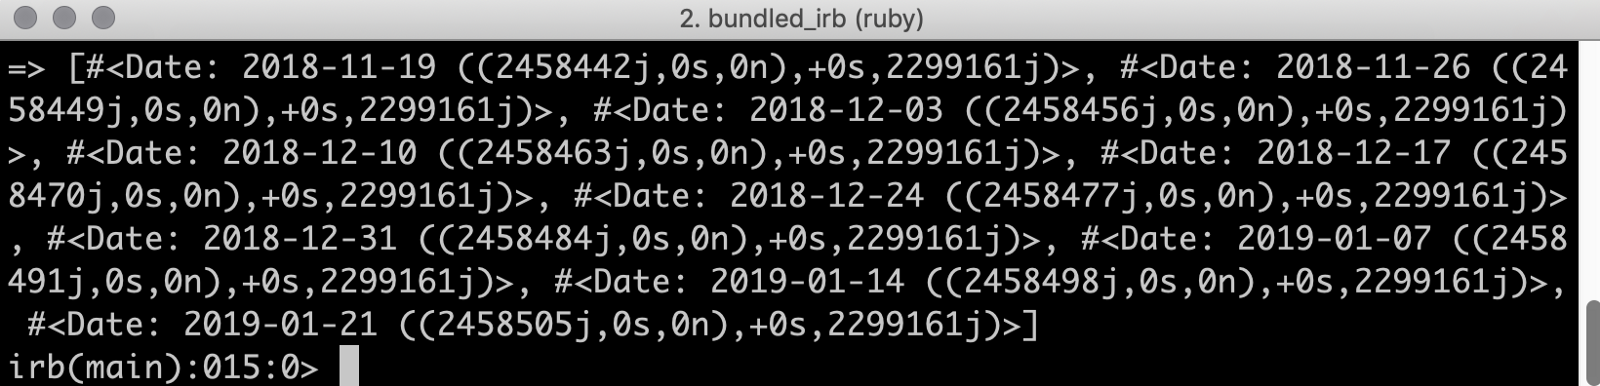 How to quickly get the dates for the first 10 Mondays using Ruby